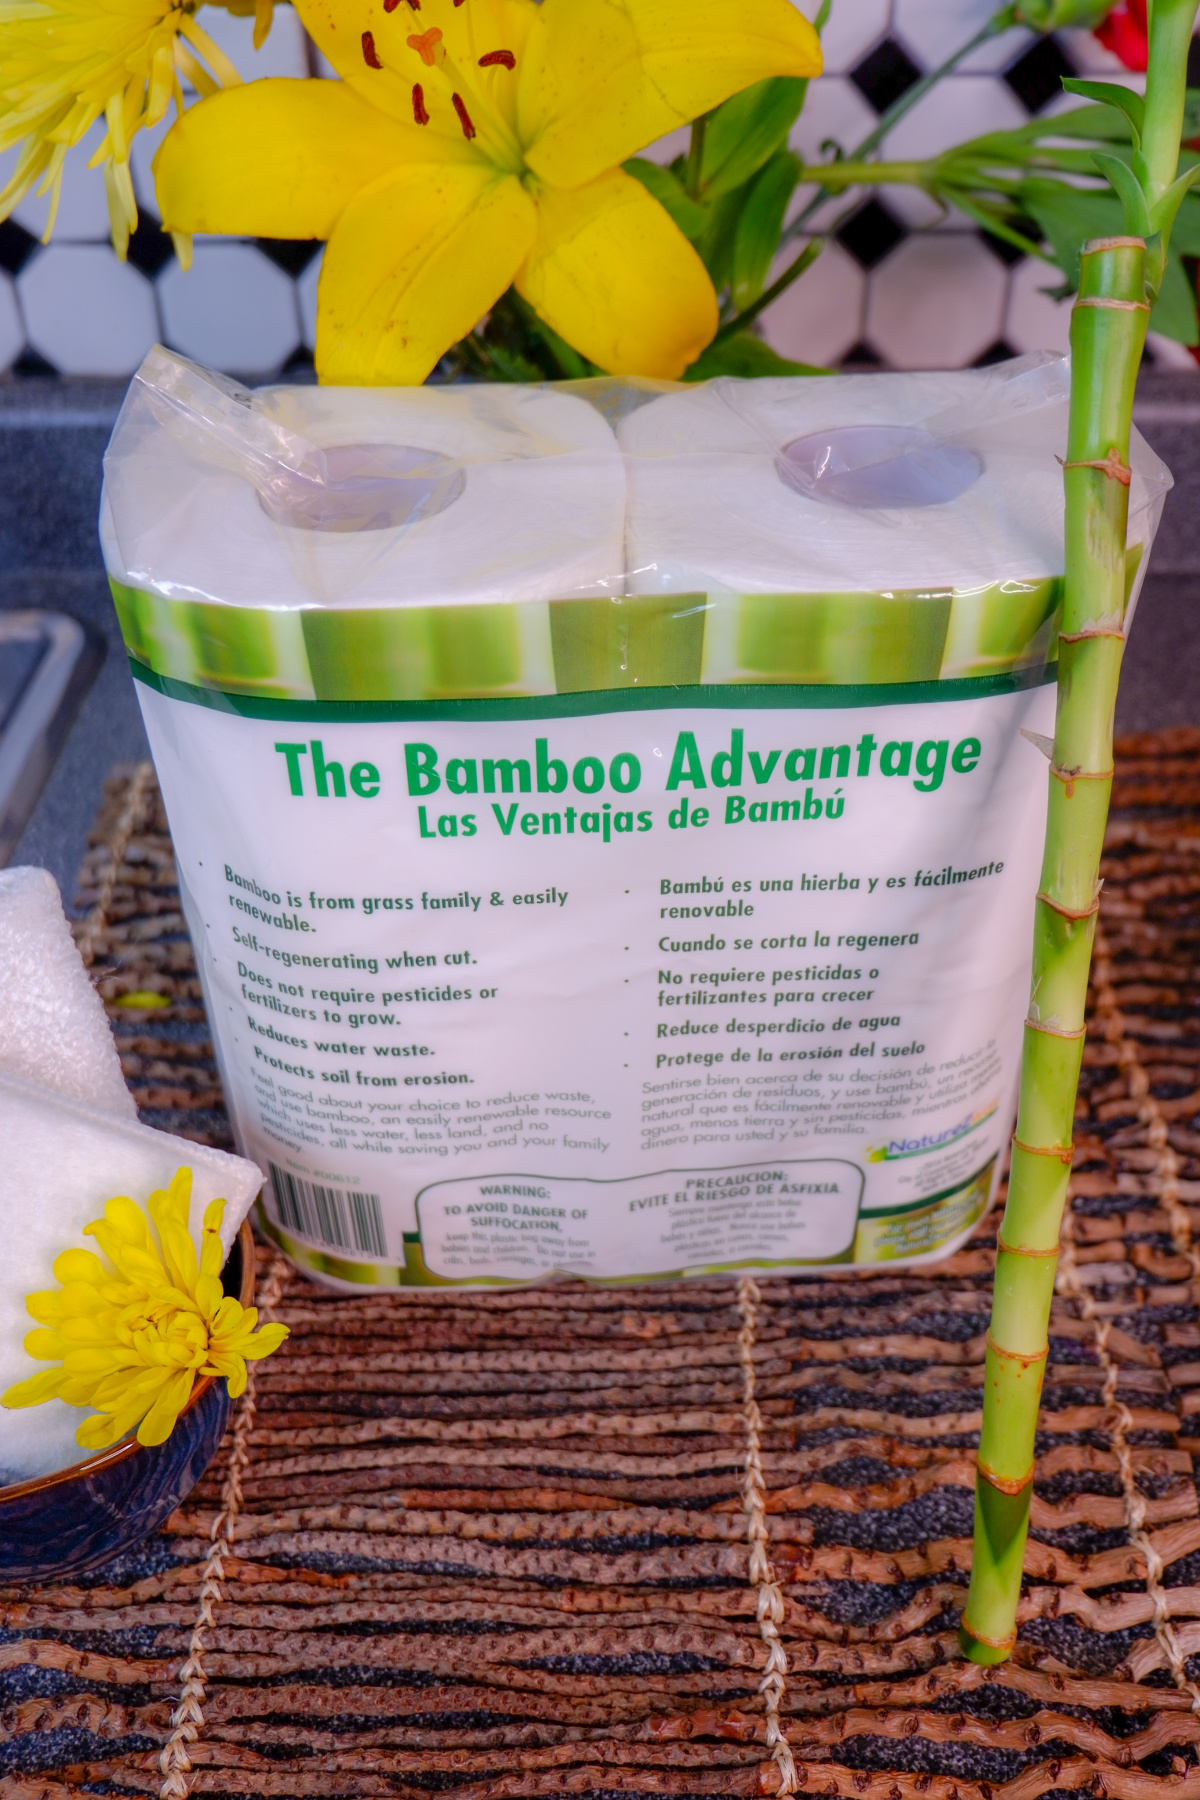 NatureZway Bamboo eco-friendly, renewable resources, bamboo products